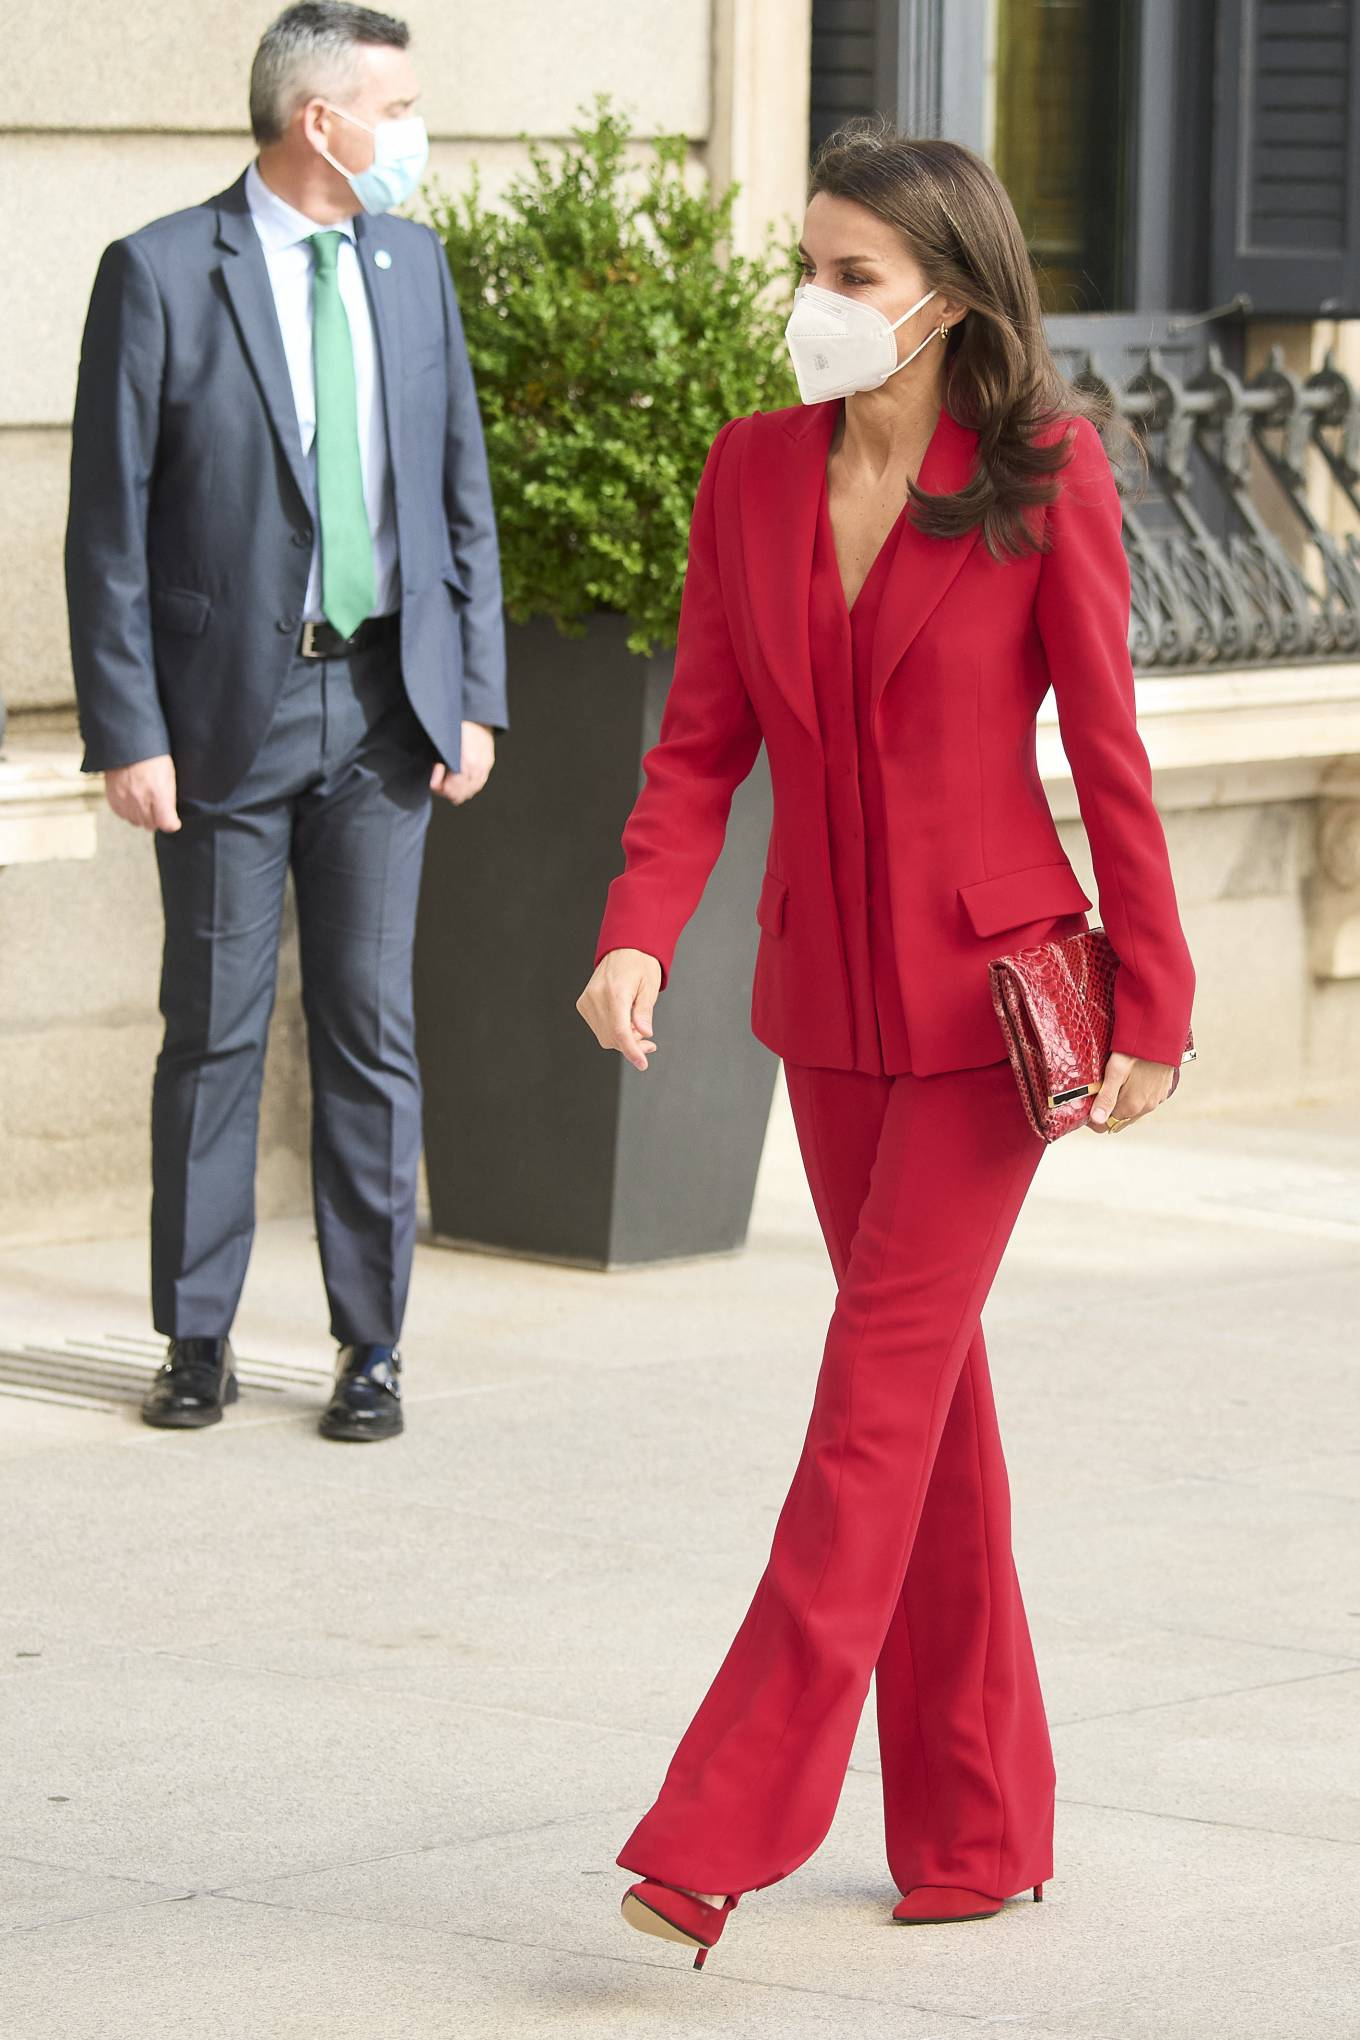 Queen Letizia Of Spain 2021 : Queen Letizia of Spain – In all red attends the tribute to the figure of Clara Campoamor in Madrid-12